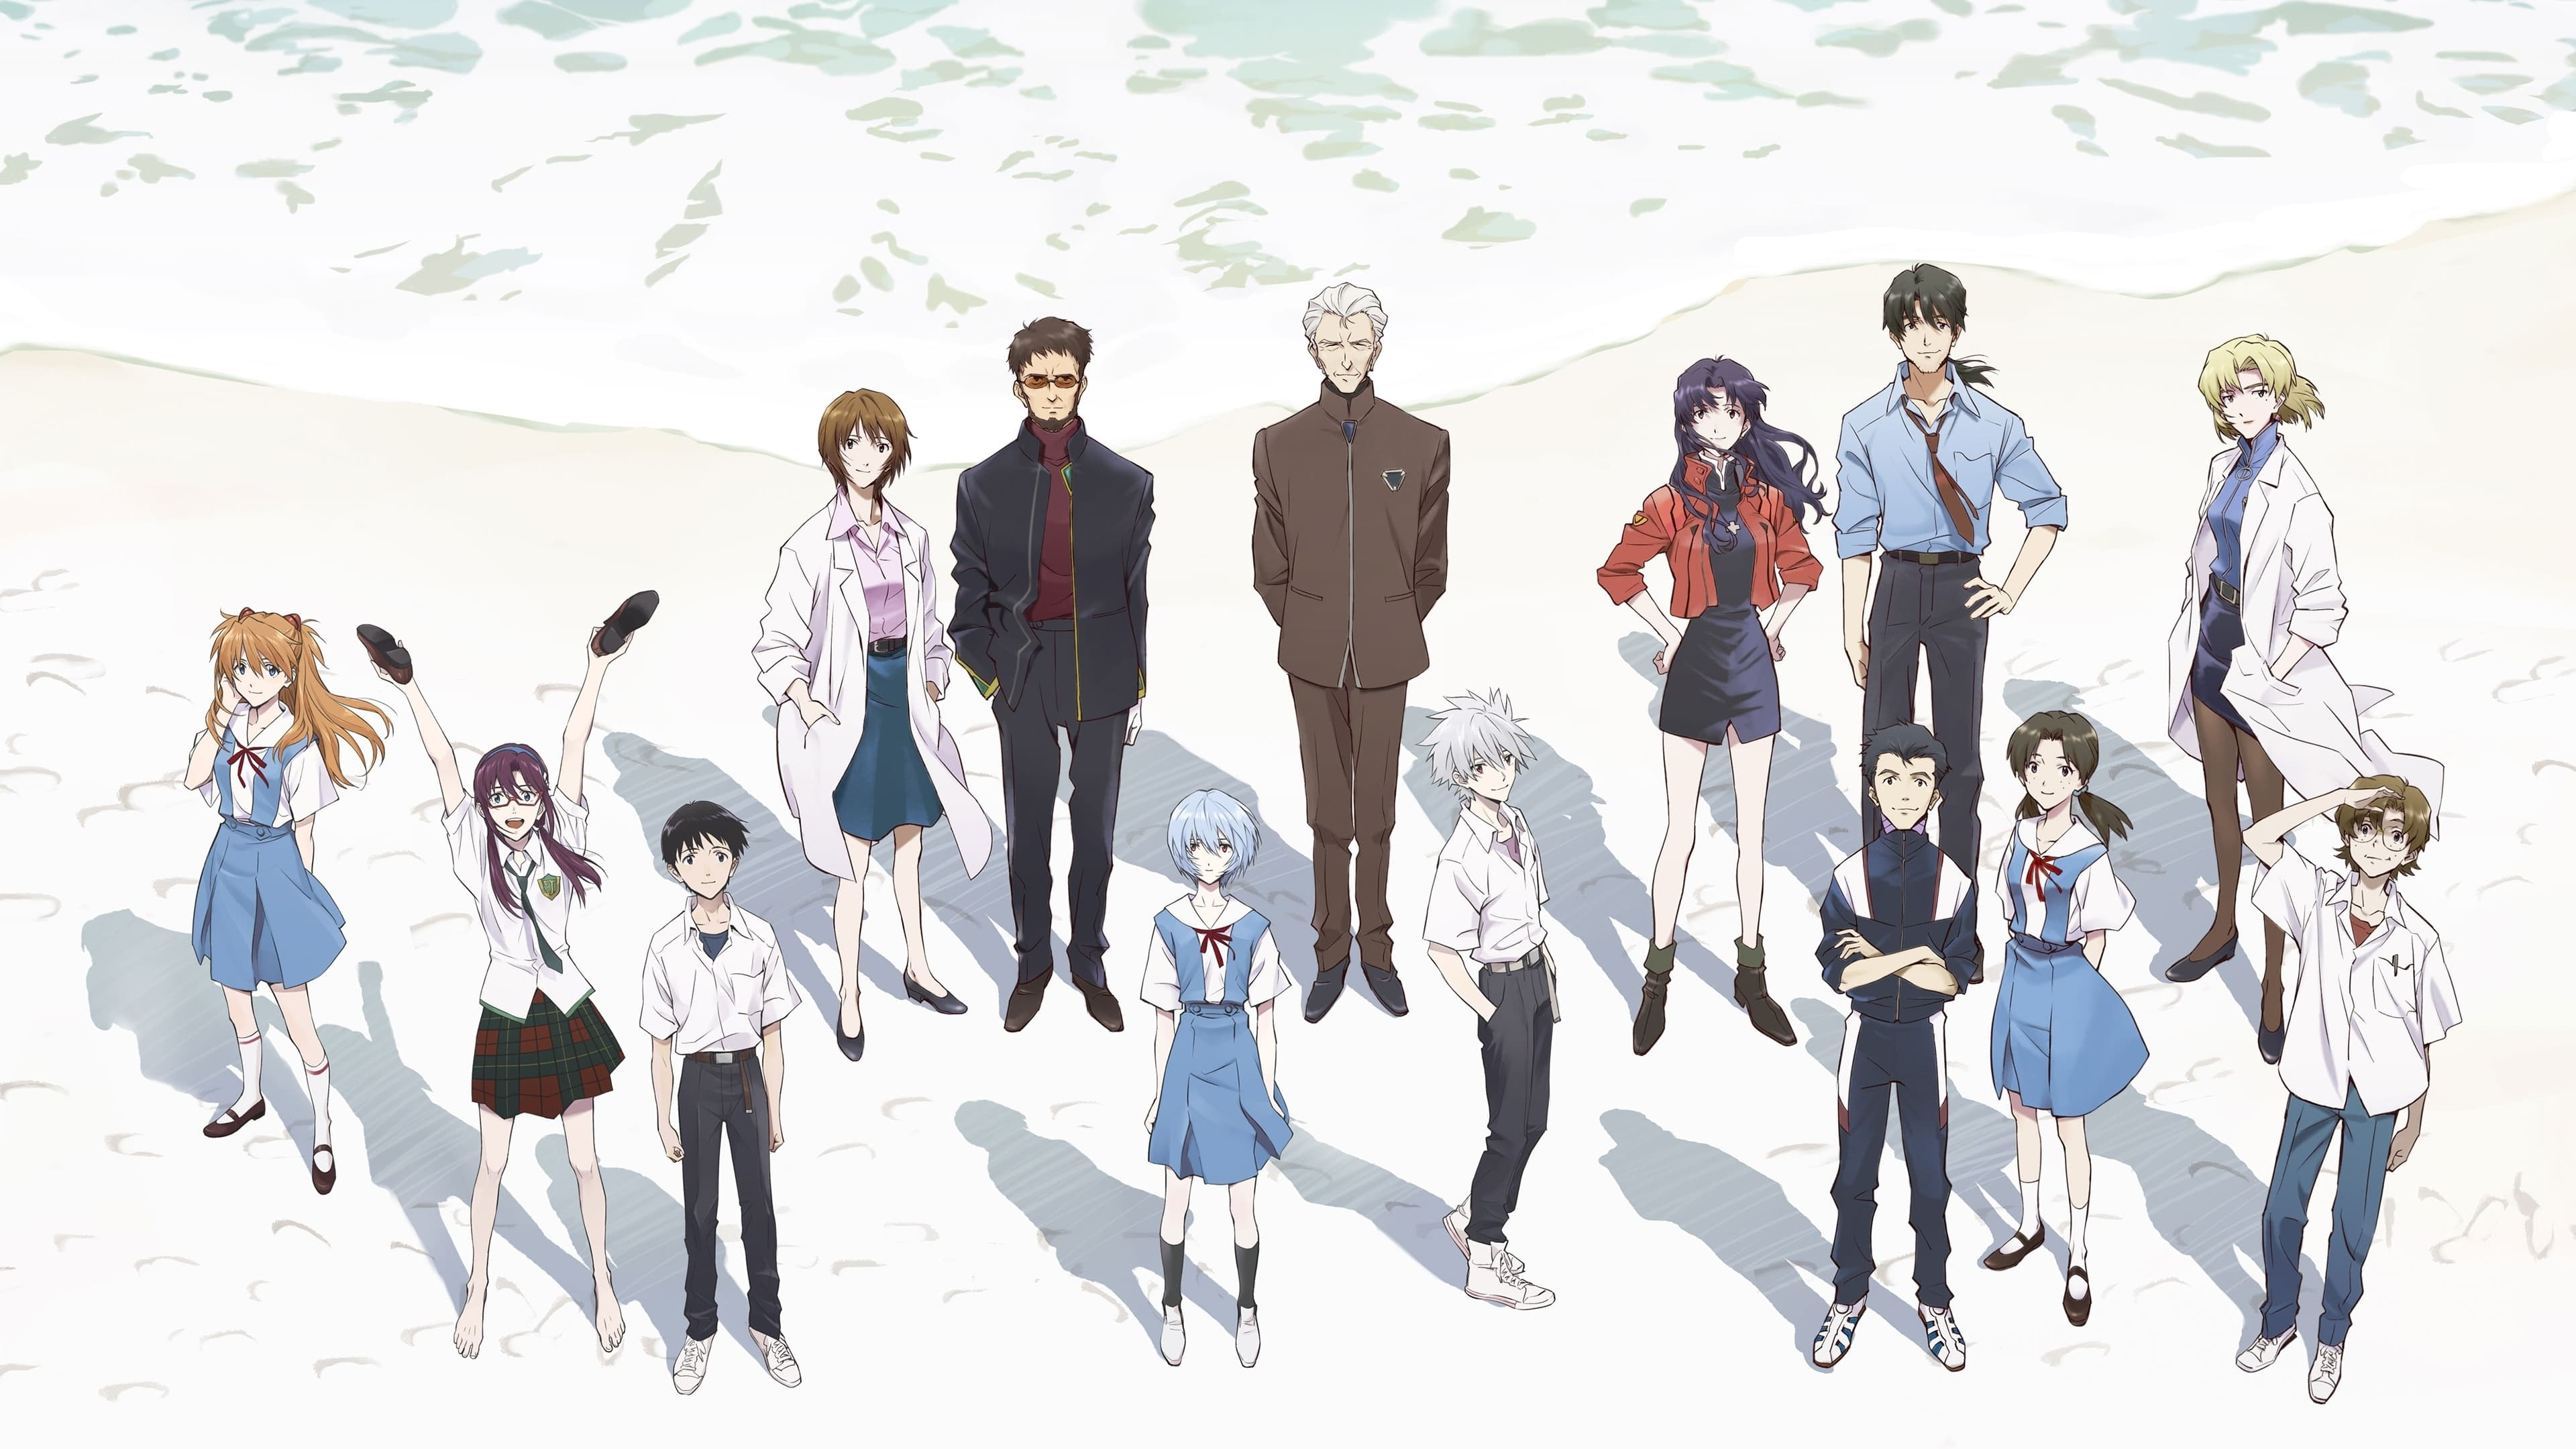 Evangelion: 3.0+1.0 Thrice Upon a Time